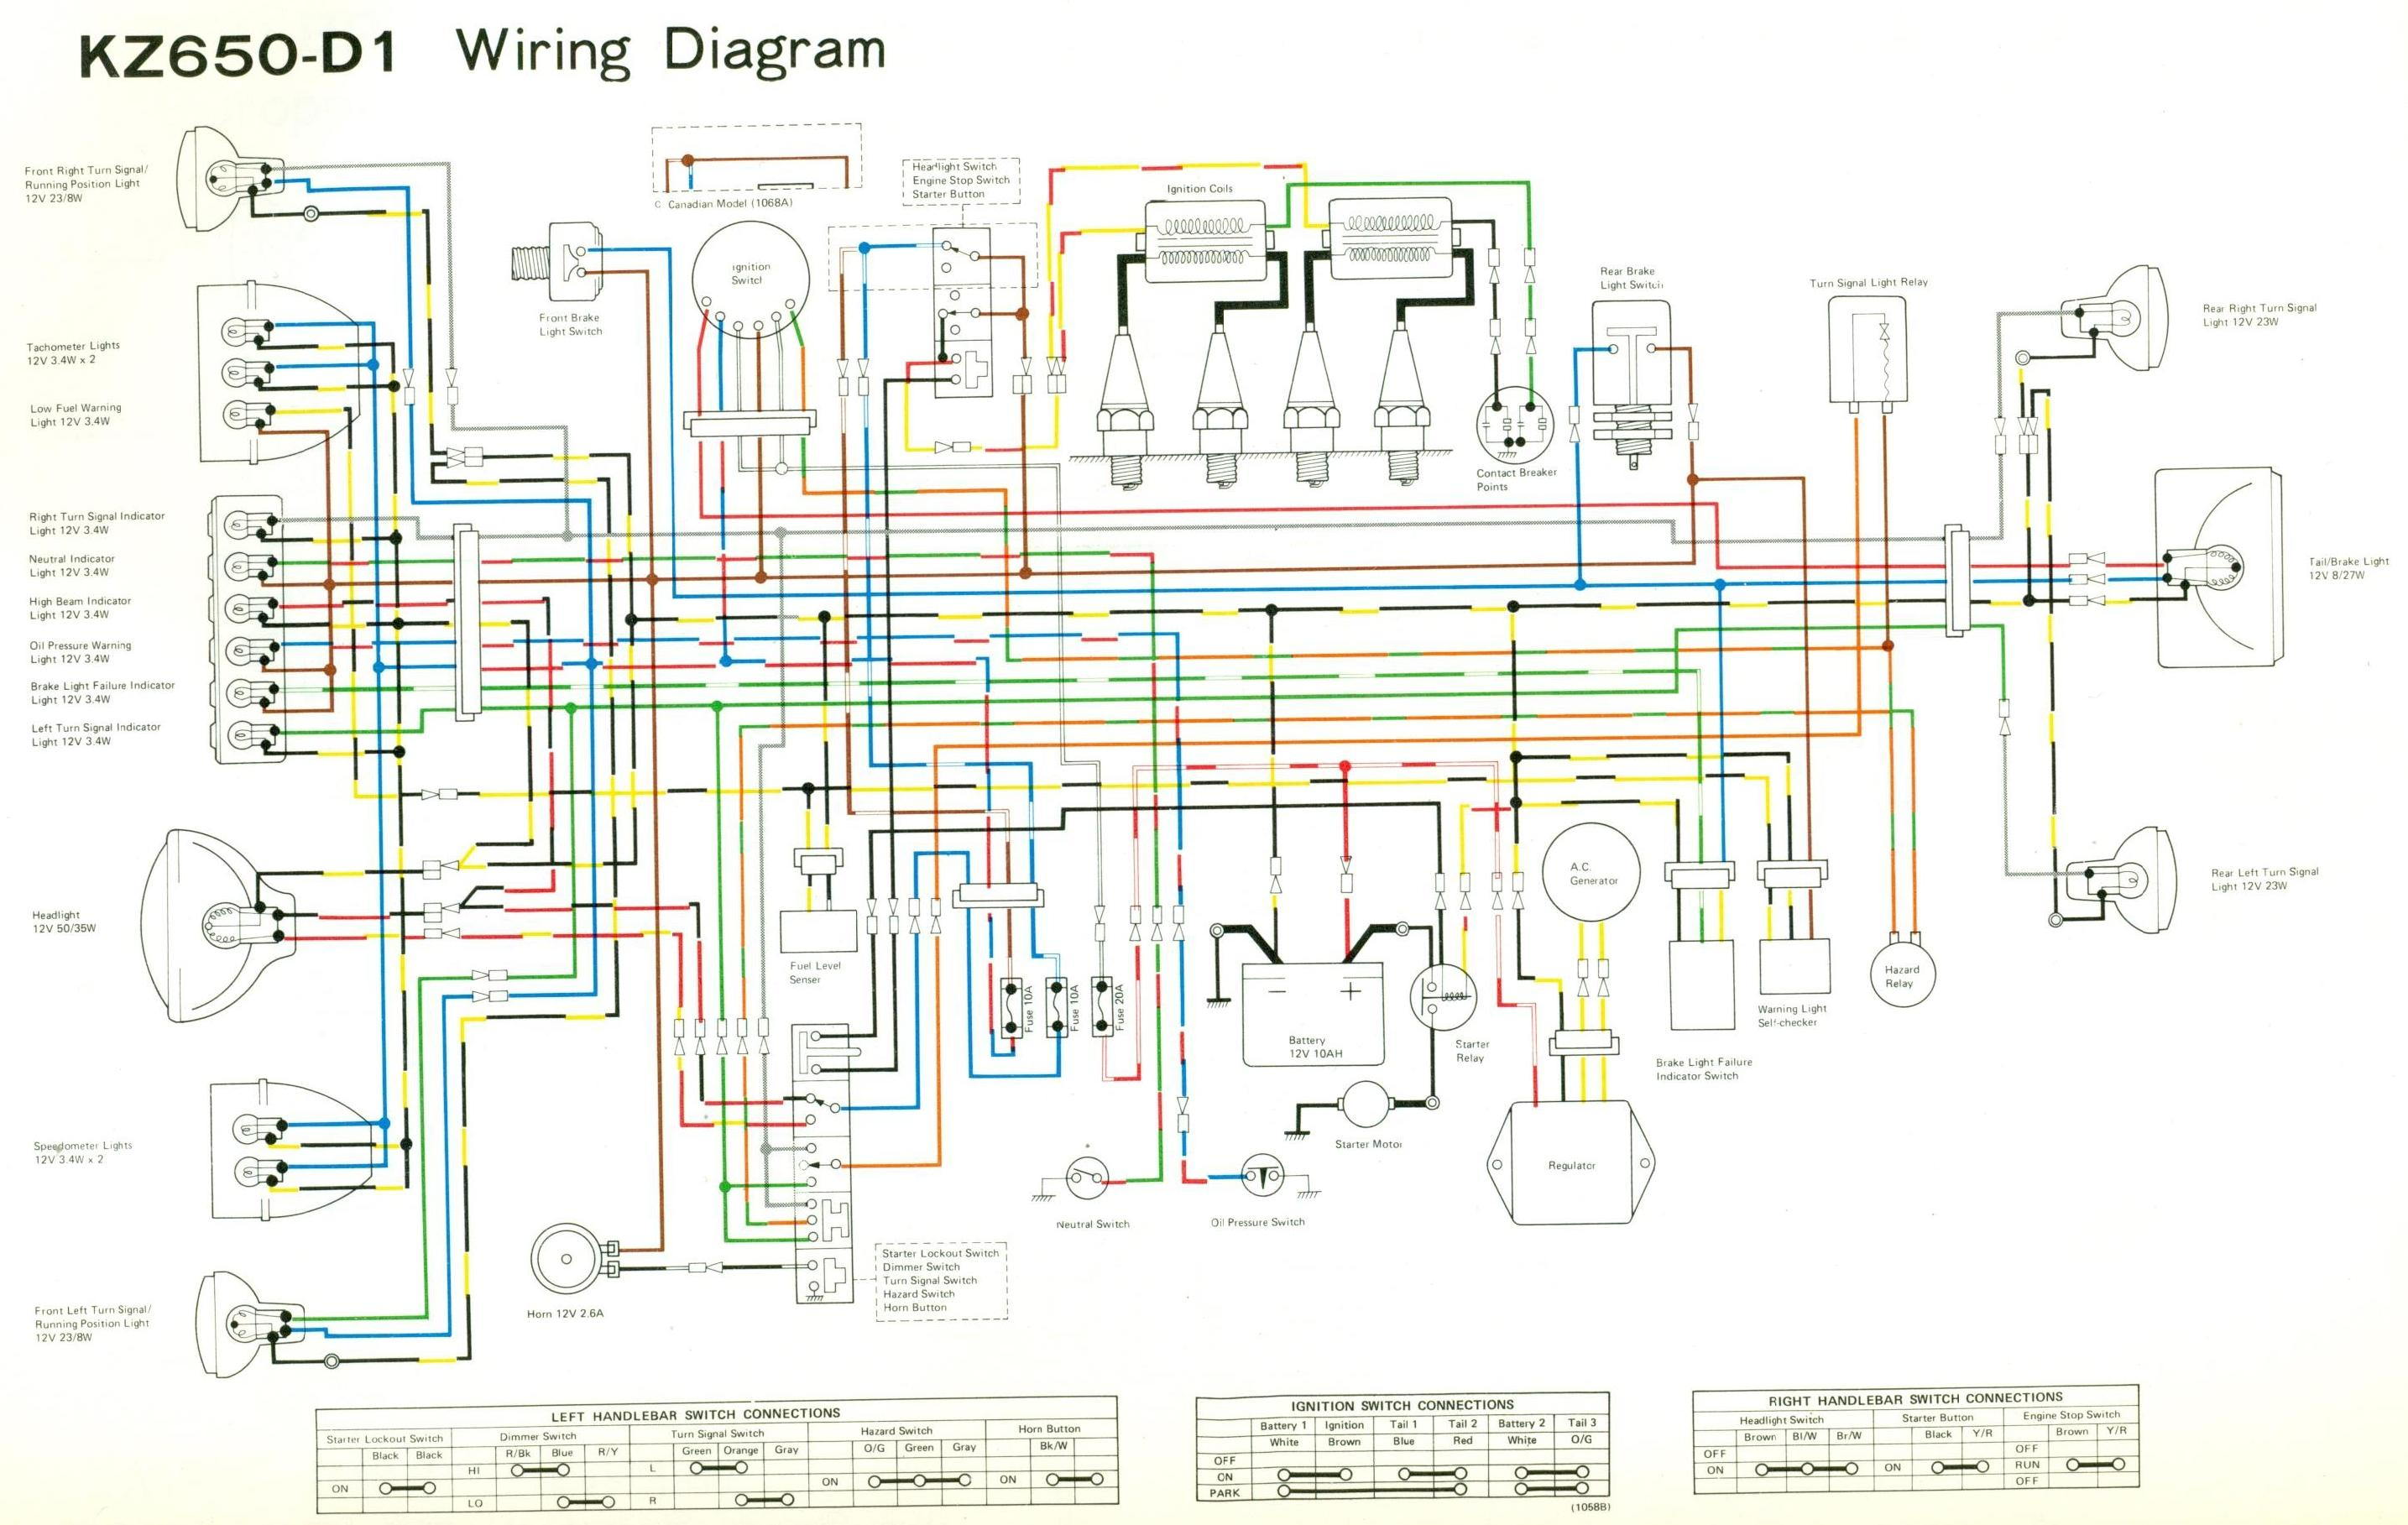 bobber kz650 wiring diagram 77 kz650 wiring diagram #11